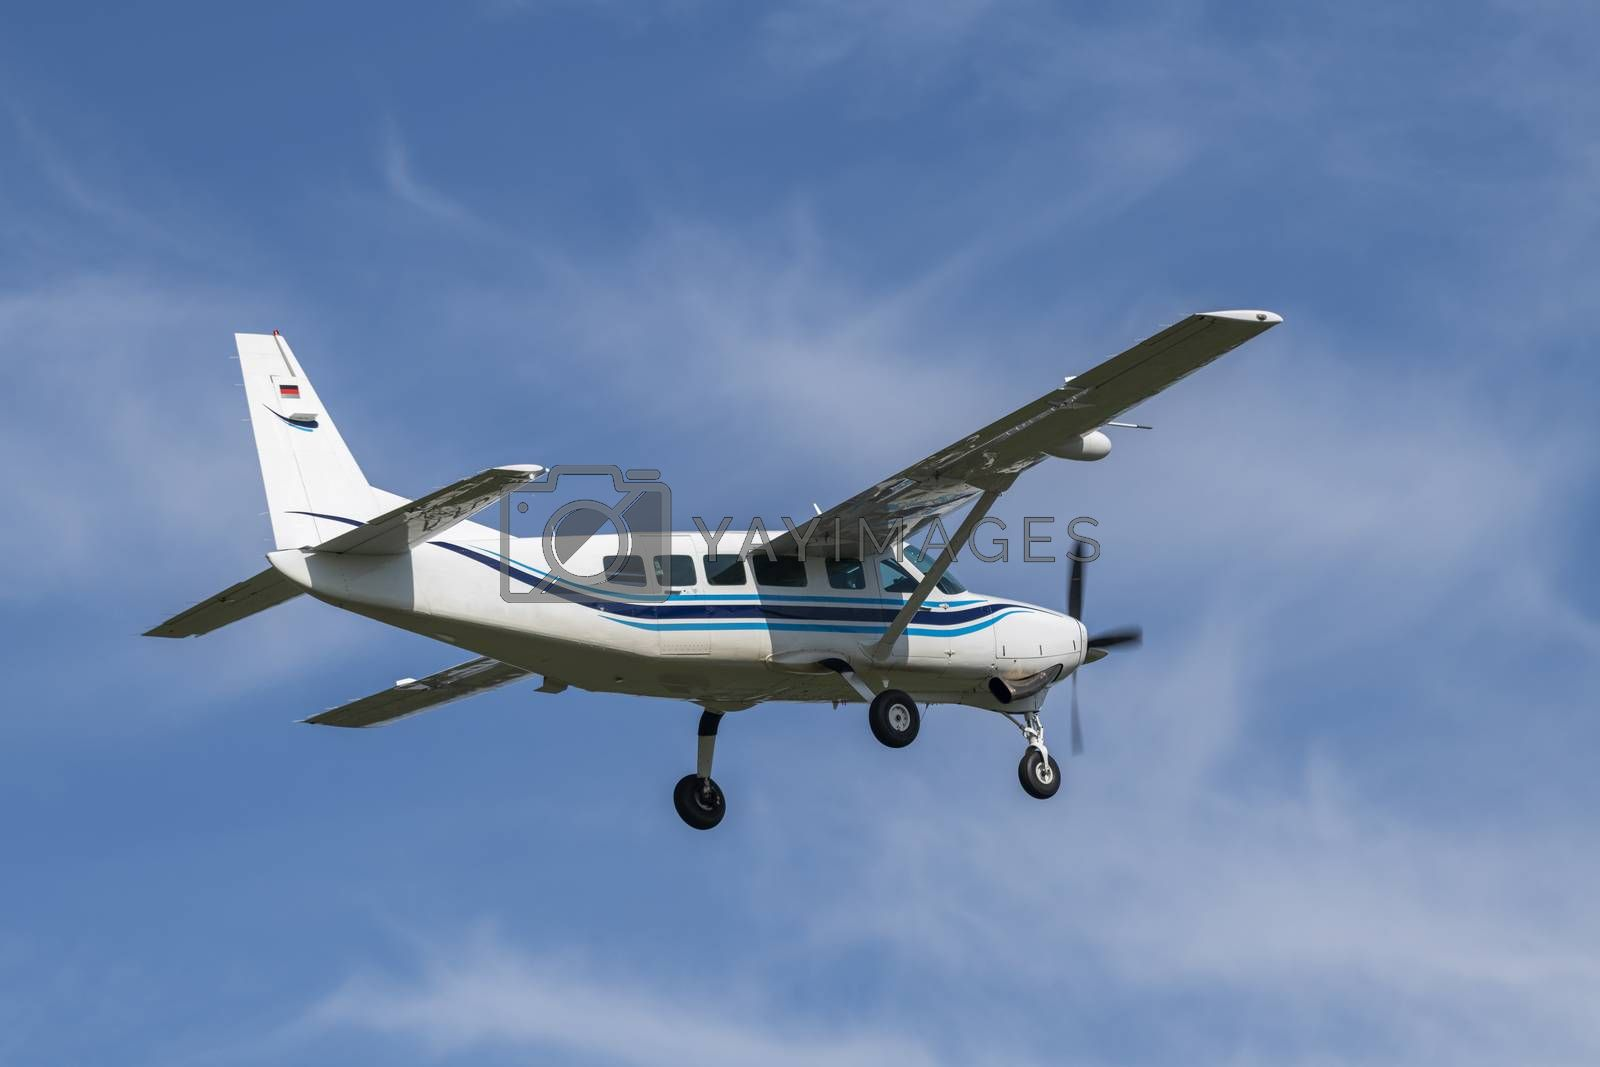 Single-engine business airplane during take off  by Tofotografie